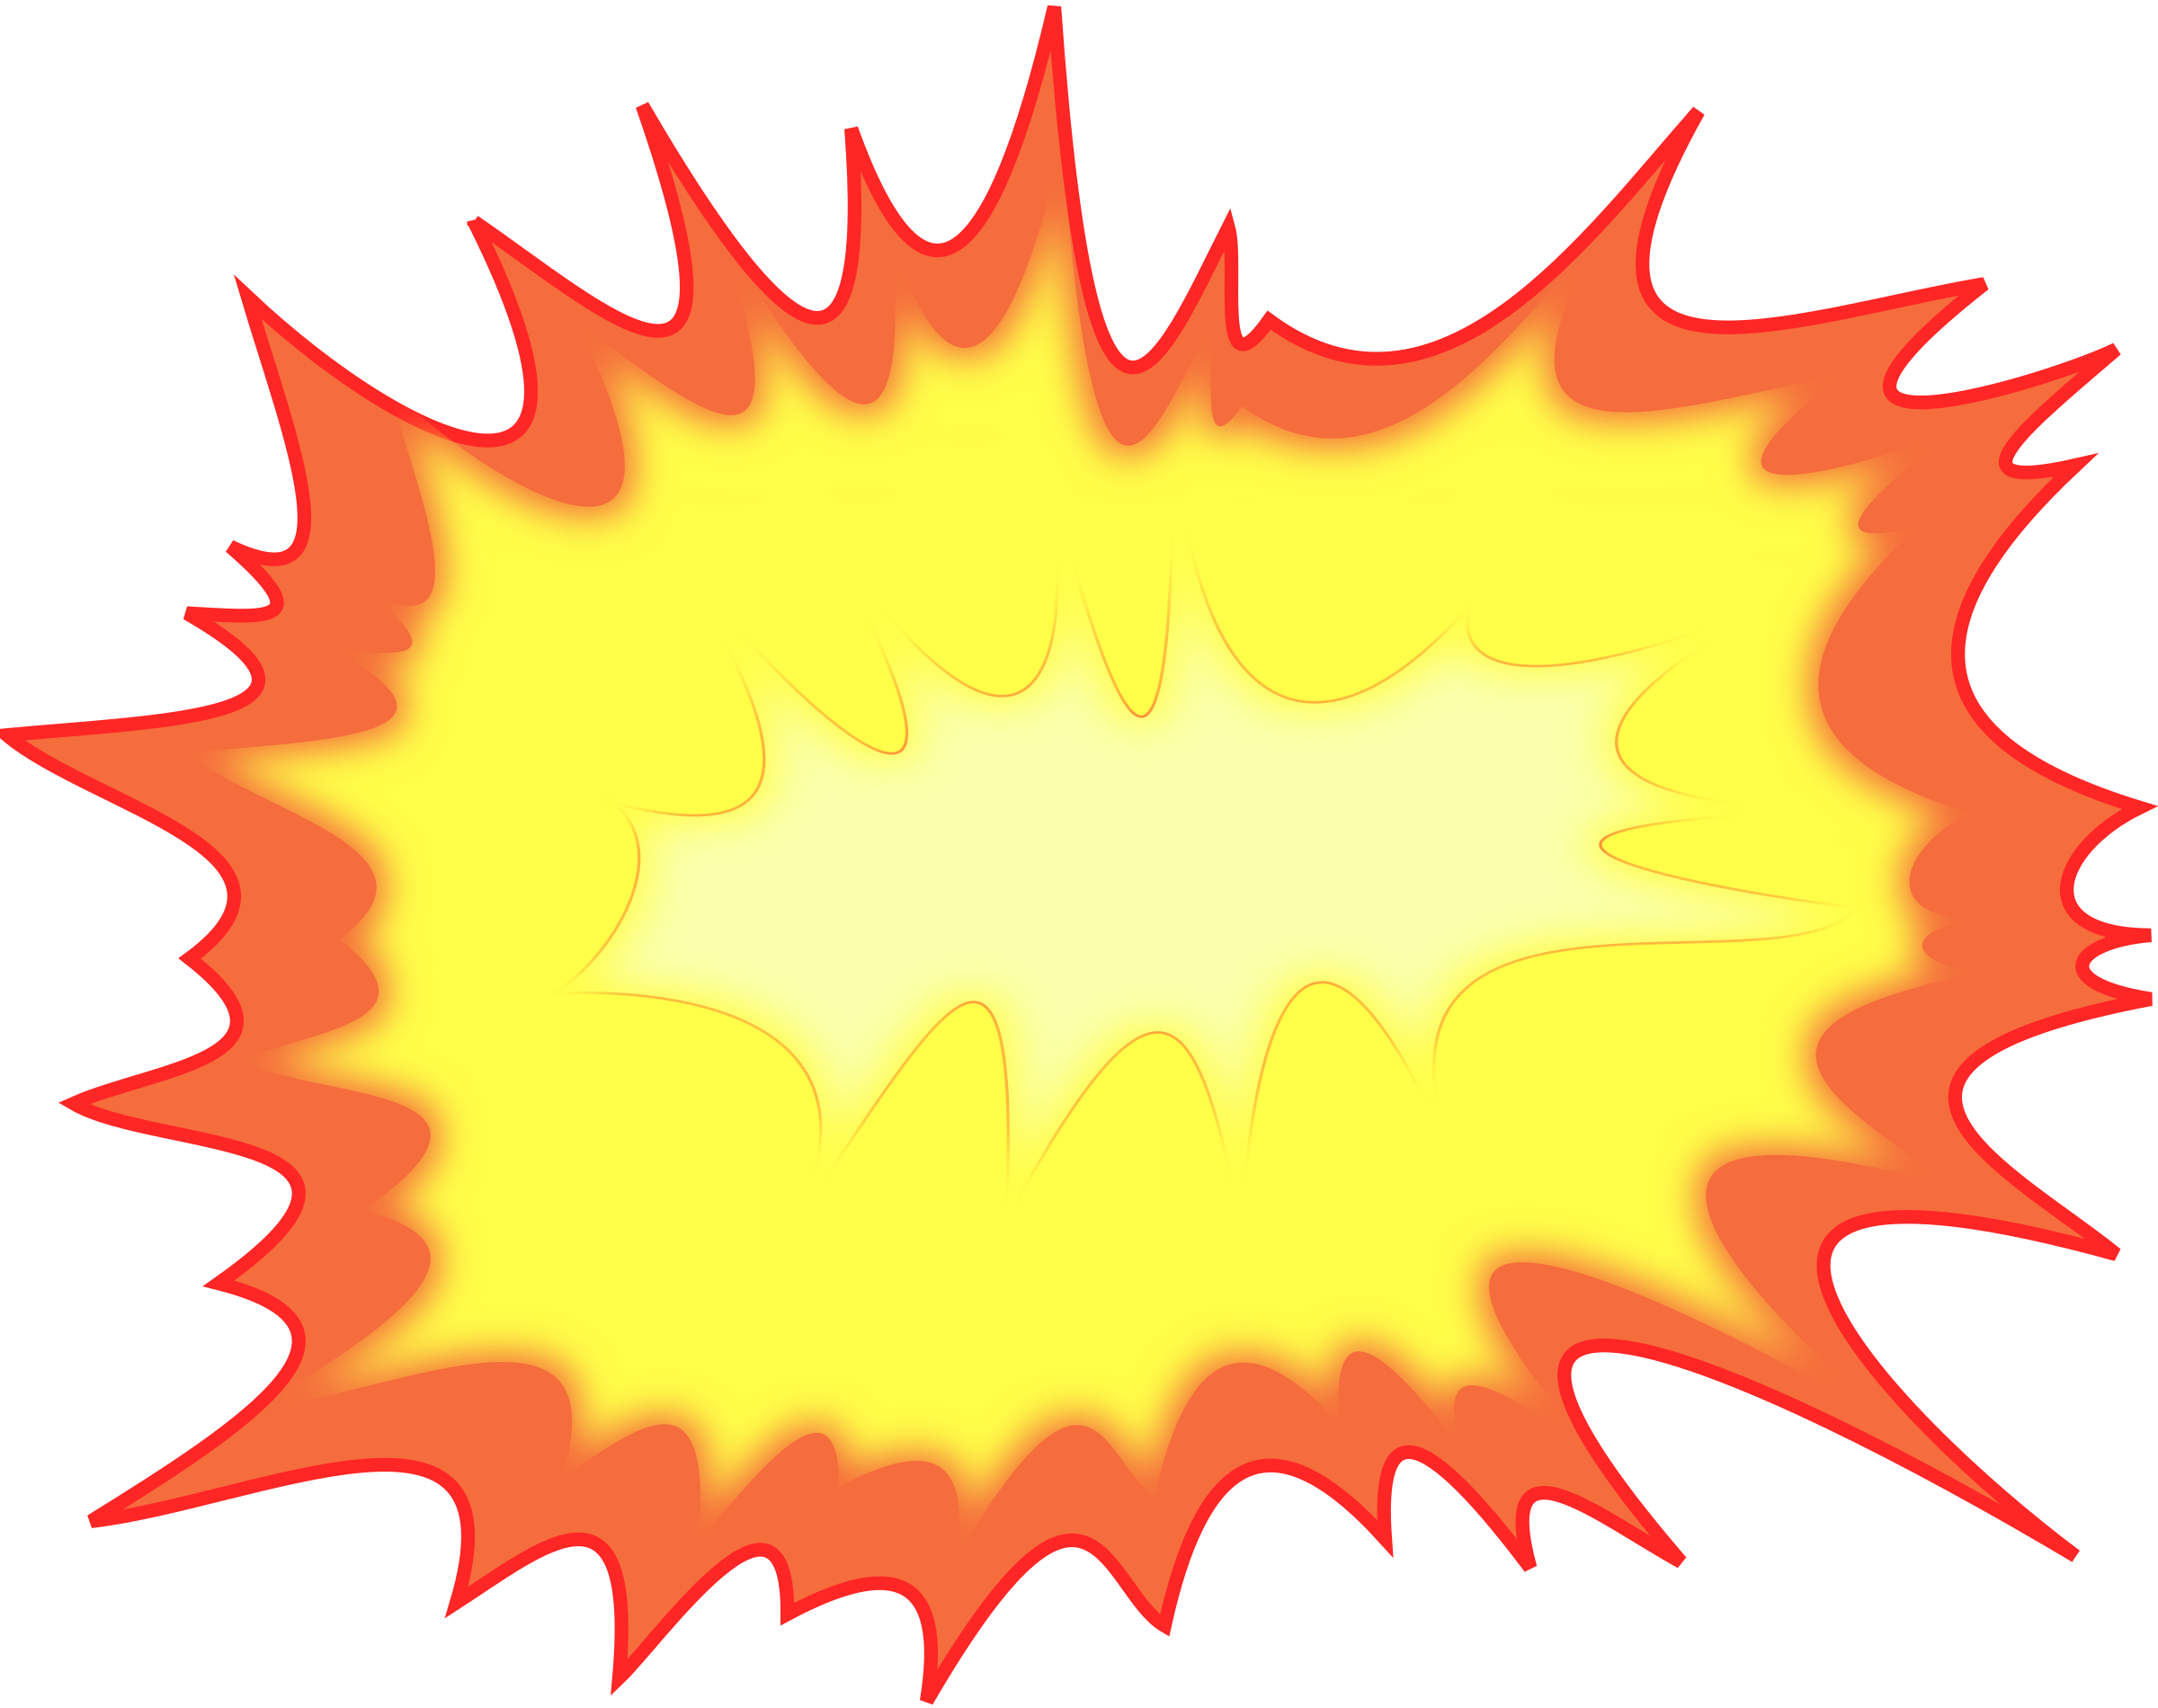 Drawn explosion Clipart Explosion Explosion